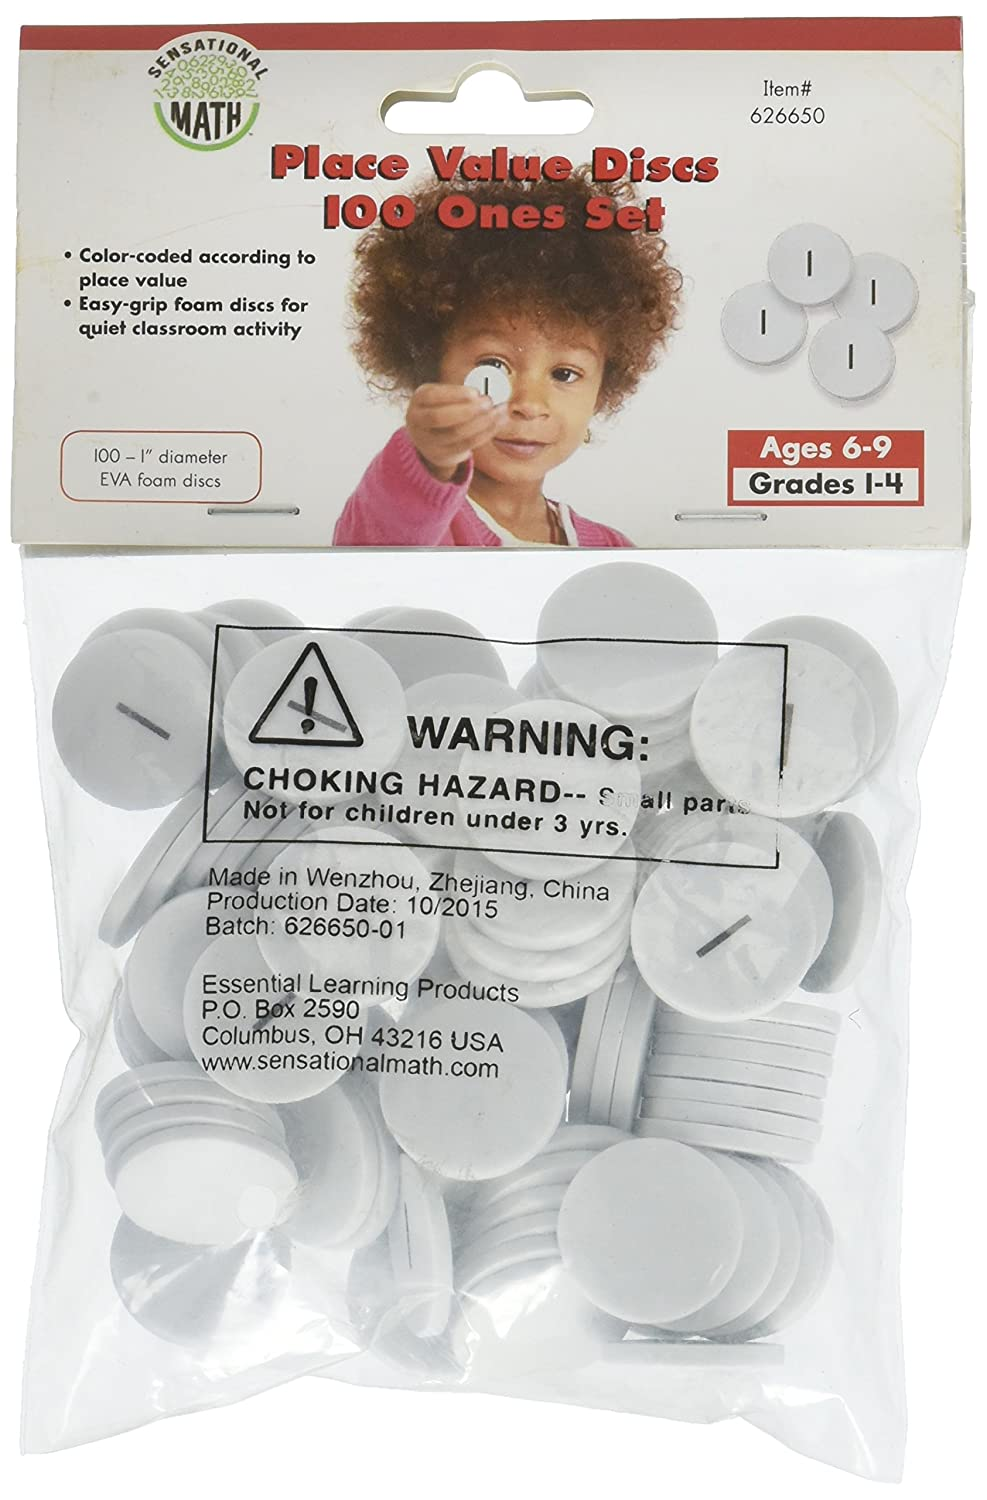 Essential Learning Products 100 Ones Place Value Discs Set